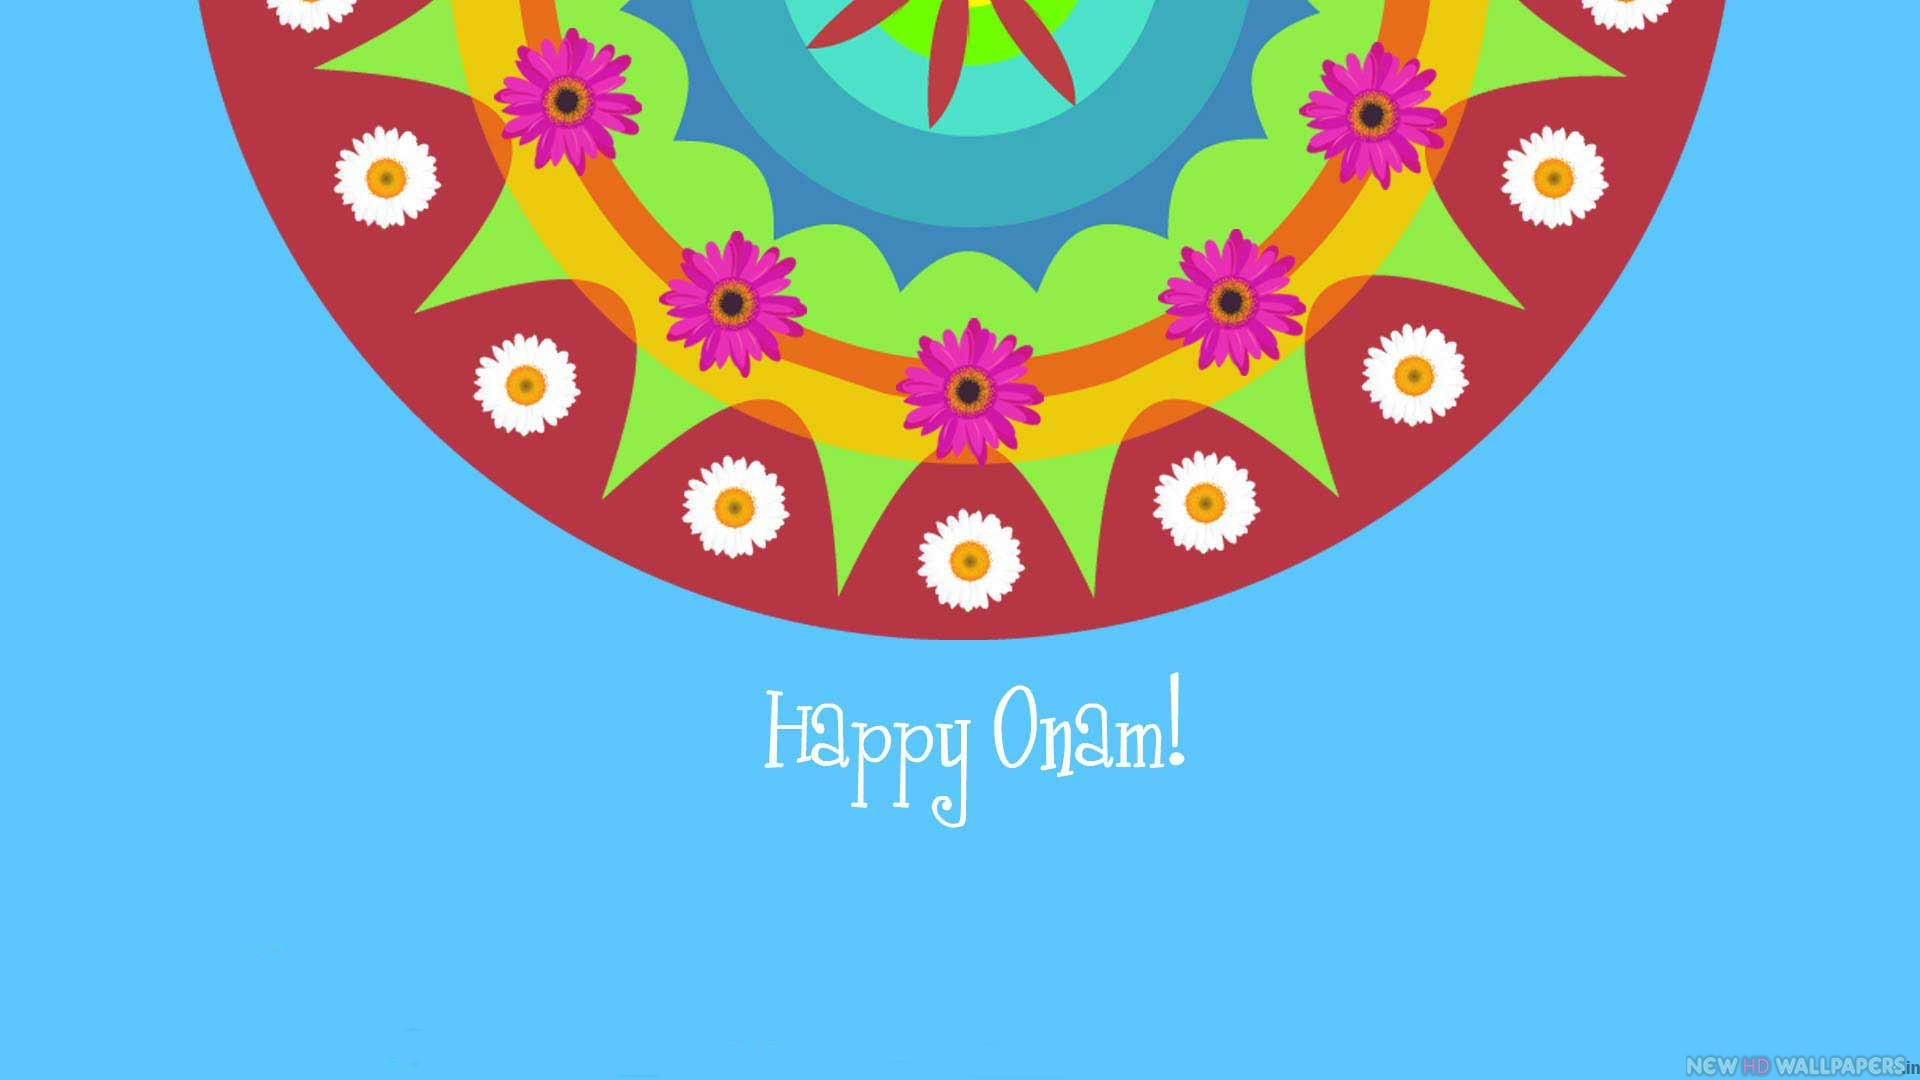 Happy Onam Wallpaper free download